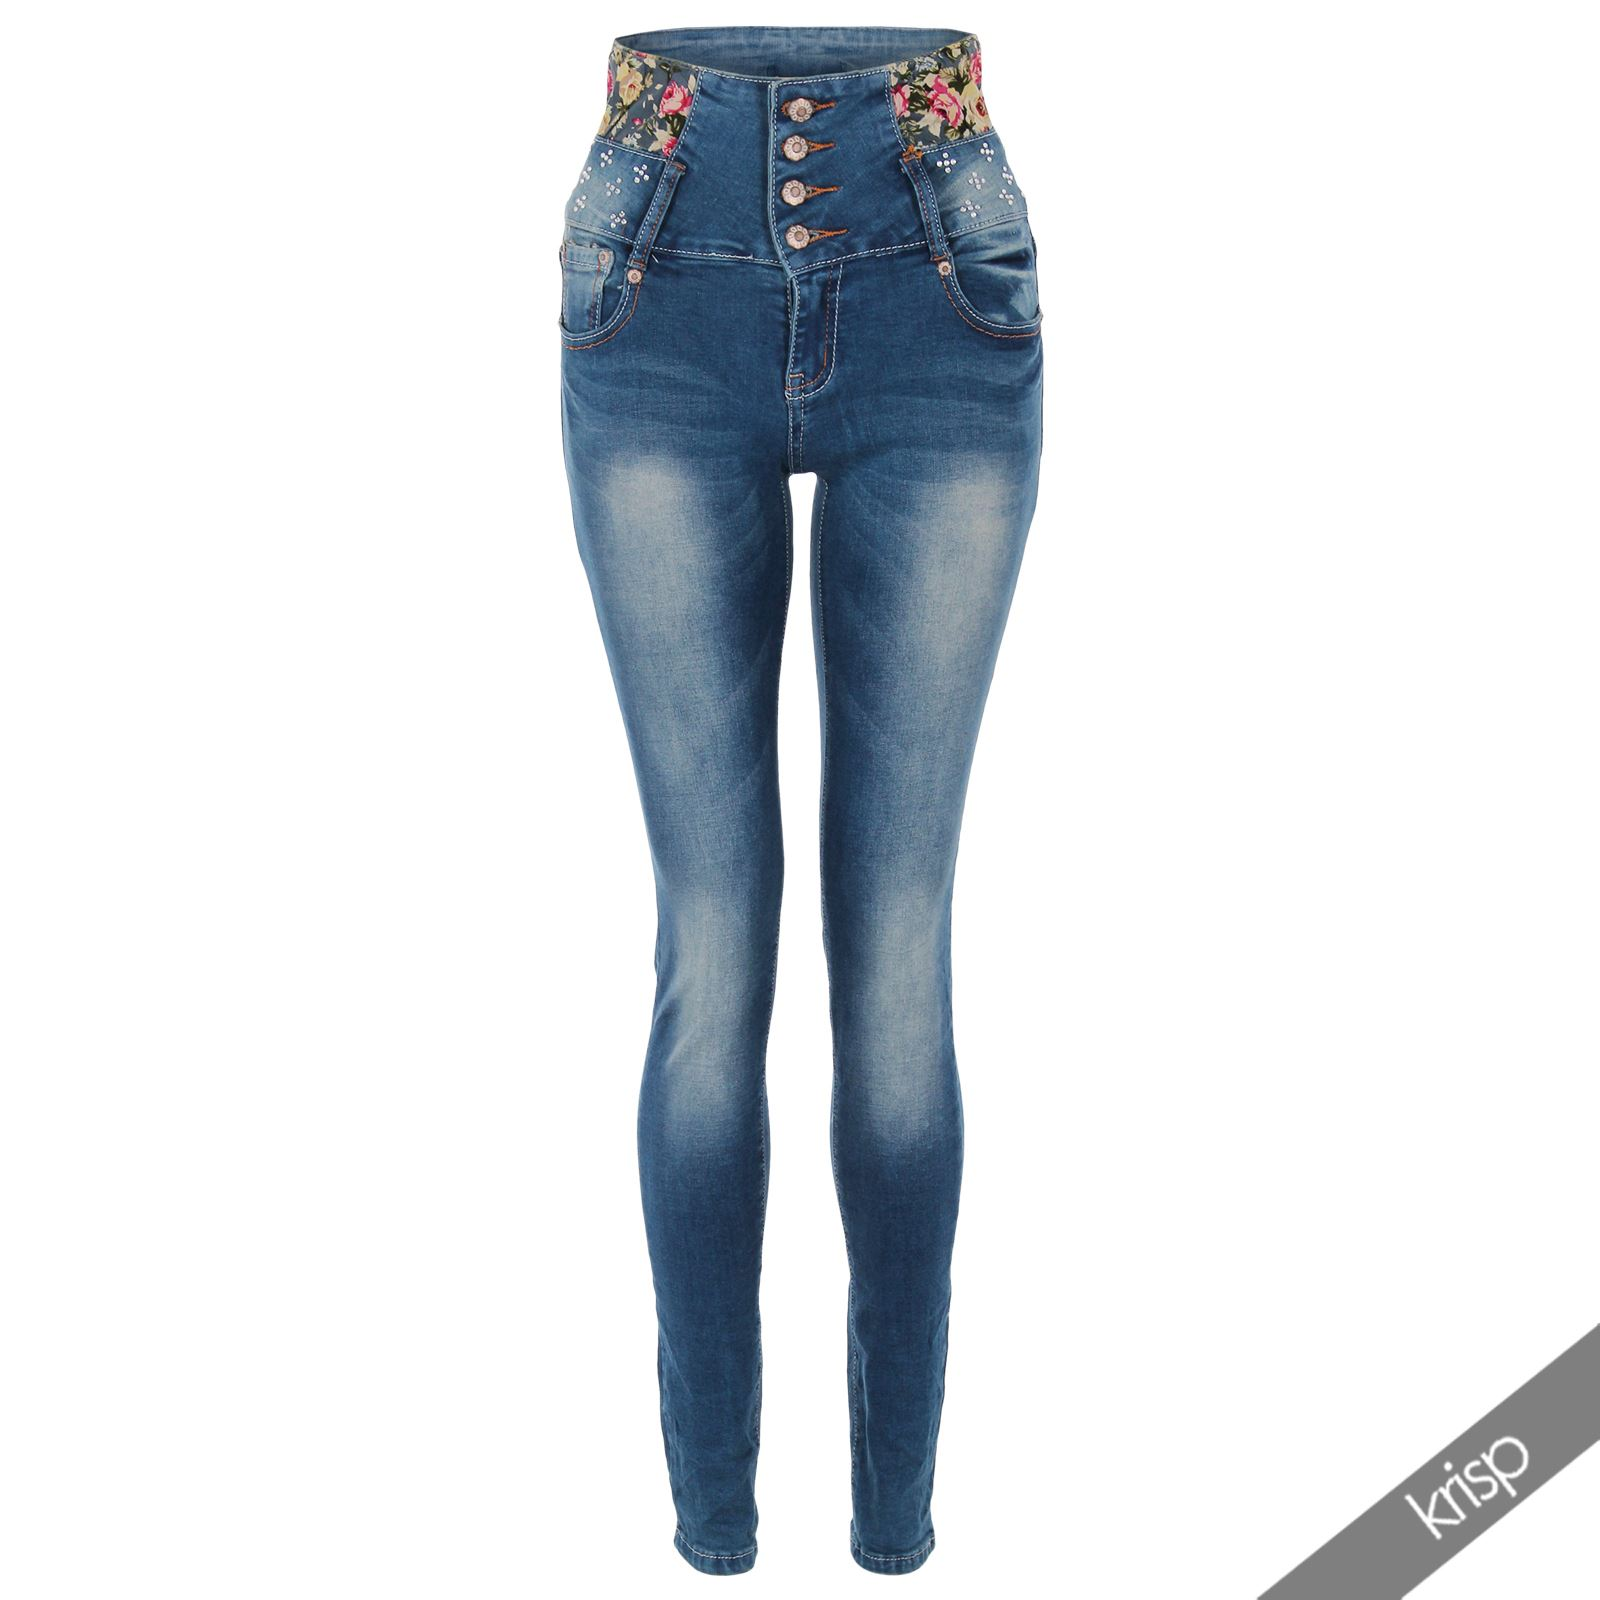 jeans skinny slim taille haute femme pantalon denim d lav bleu sexy ebay. Black Bedroom Furniture Sets. Home Design Ideas